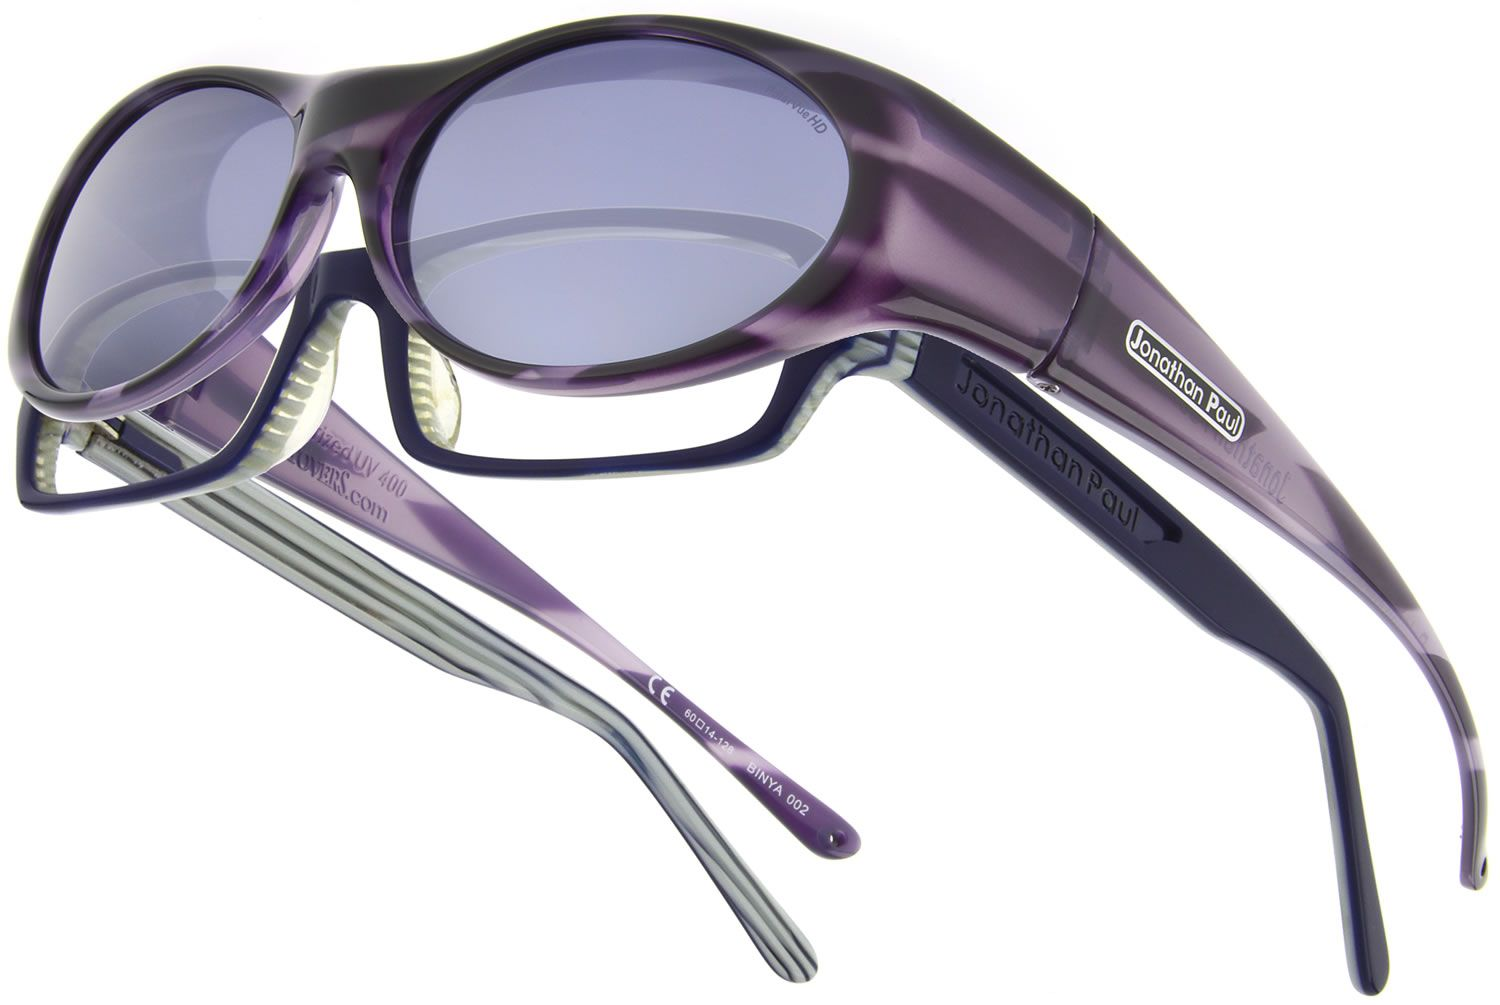 4b6d9acf83 Binya Purple Zebra fitover sunglasses by Jonathan Paul® Fitovers are the  world s finest fitting fit over sunglasses - made with unparalleled  technology ...